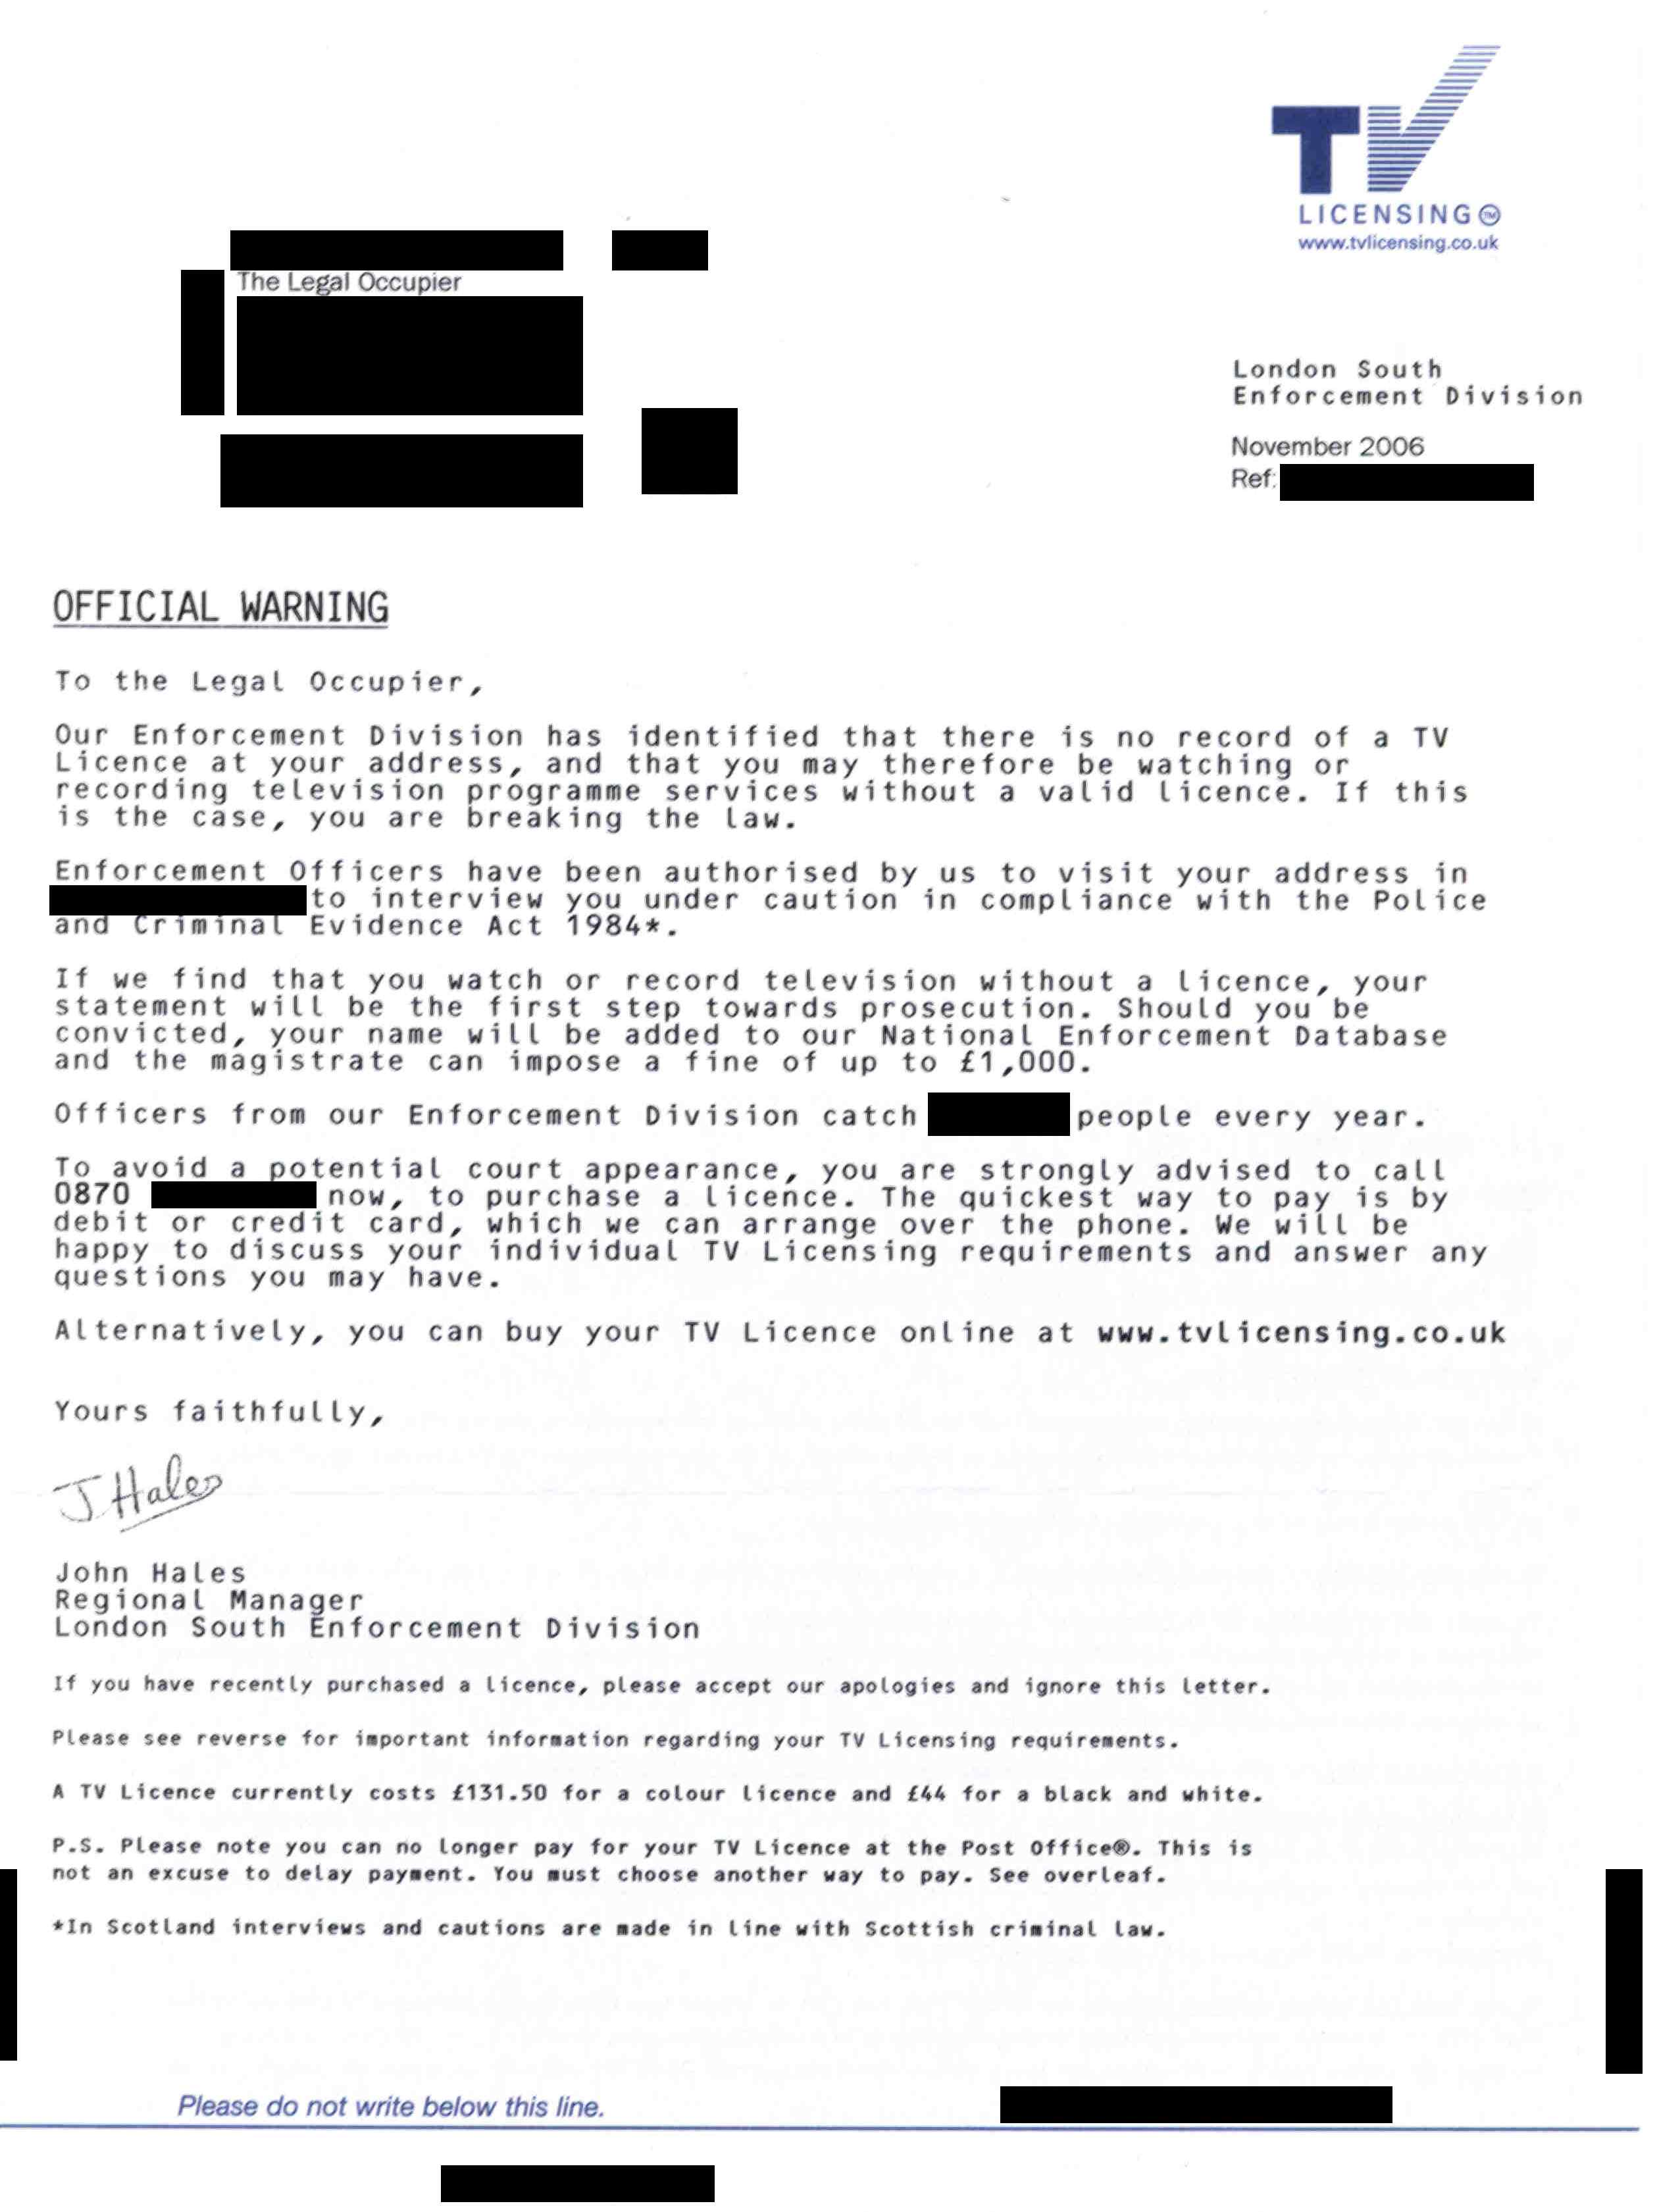 TV Licence official warning letter